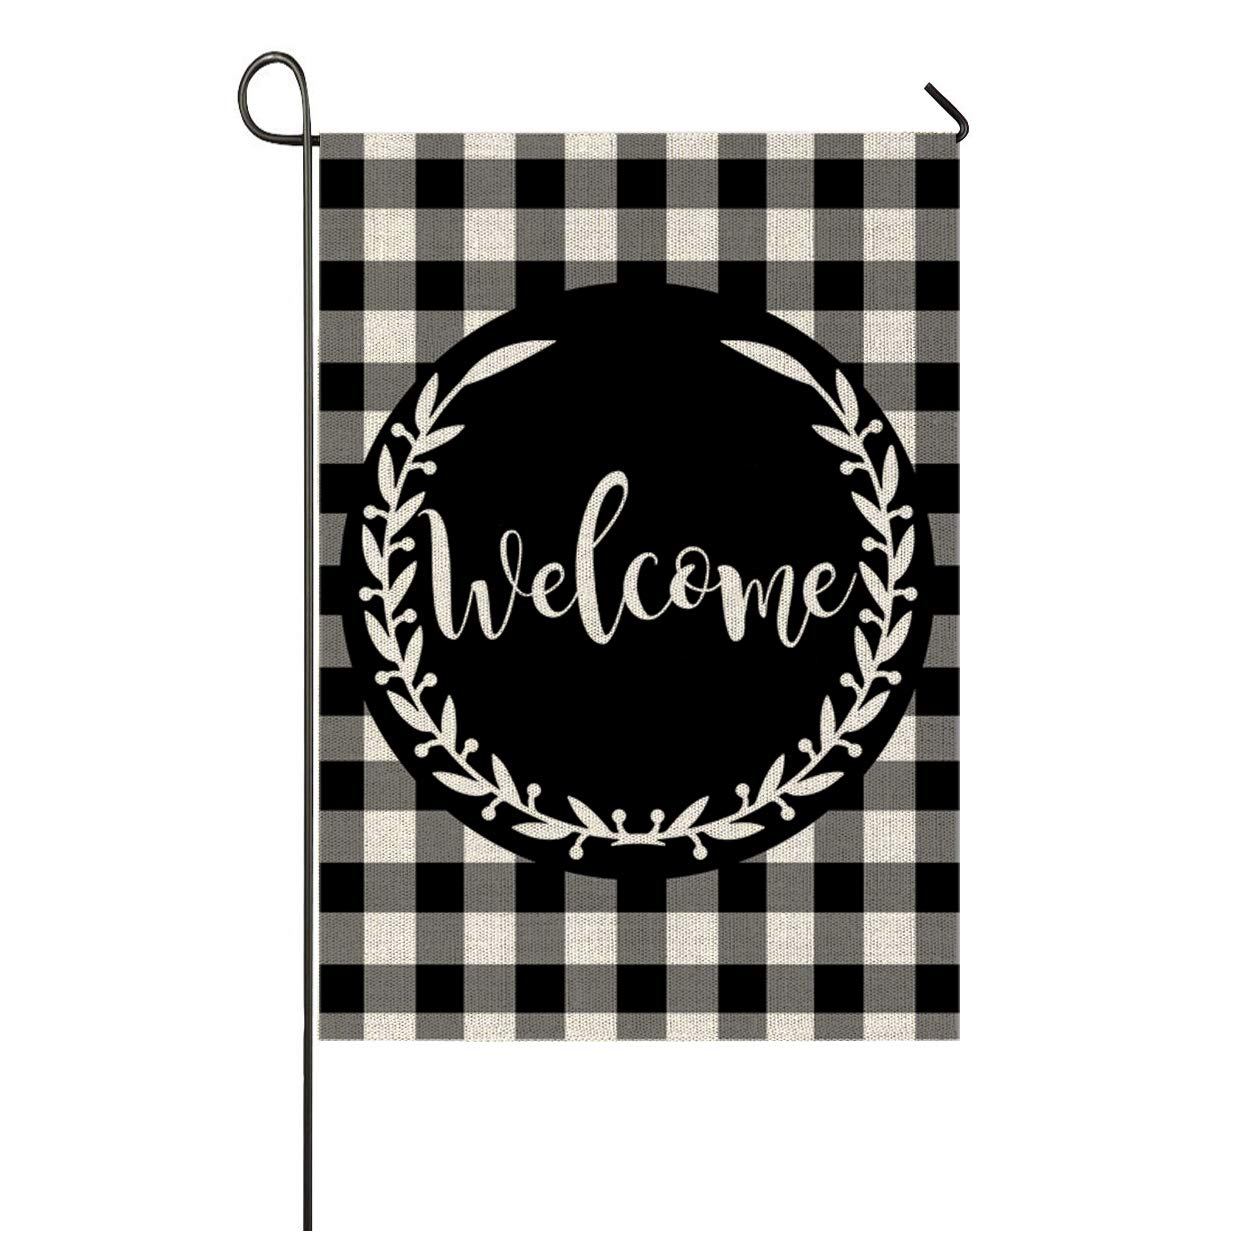 Auomily Welcome Garden Flag Vertical Double Sided Black White Buffalo Plaids Inspirational Quotes Burlap Garden Yard Banner Lawn Outdoor Decoration 12.5 x 18 Inch (Welcome-Buffalo Plaids)